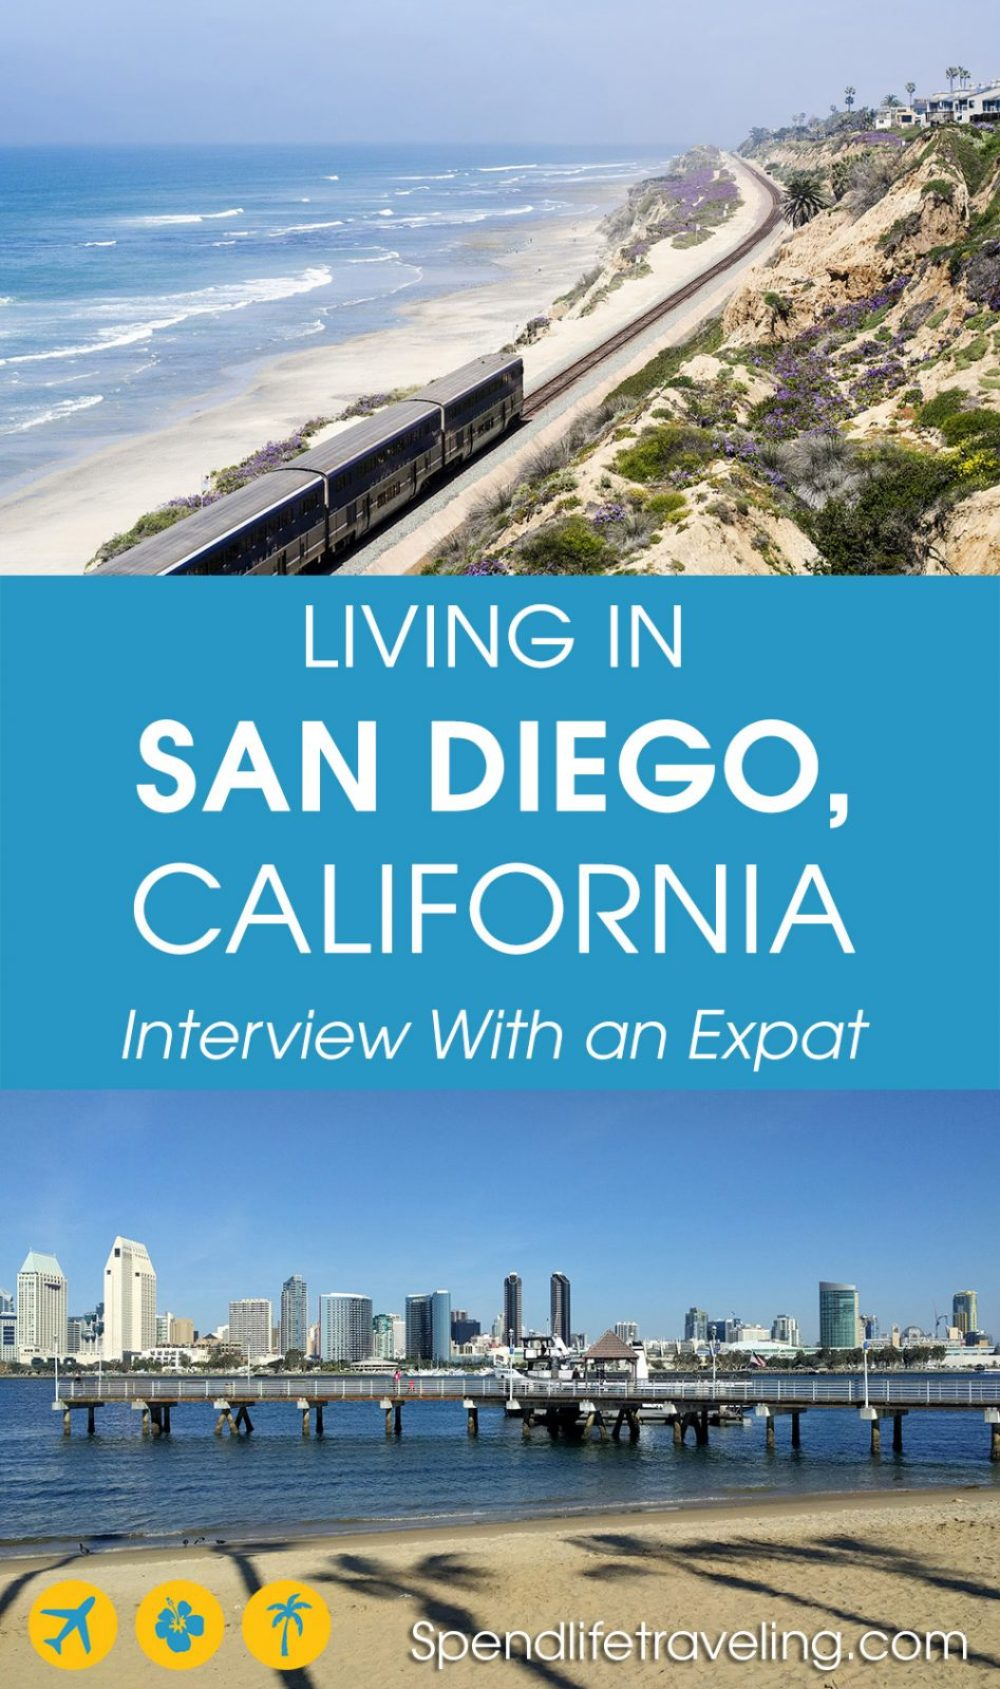 What is San Diego really like? Interview with an expat about moving to and living in San Diego, plus some insider travel tips. #SanDiego #movetoCalifornia #expat #moveabroad #workabroad